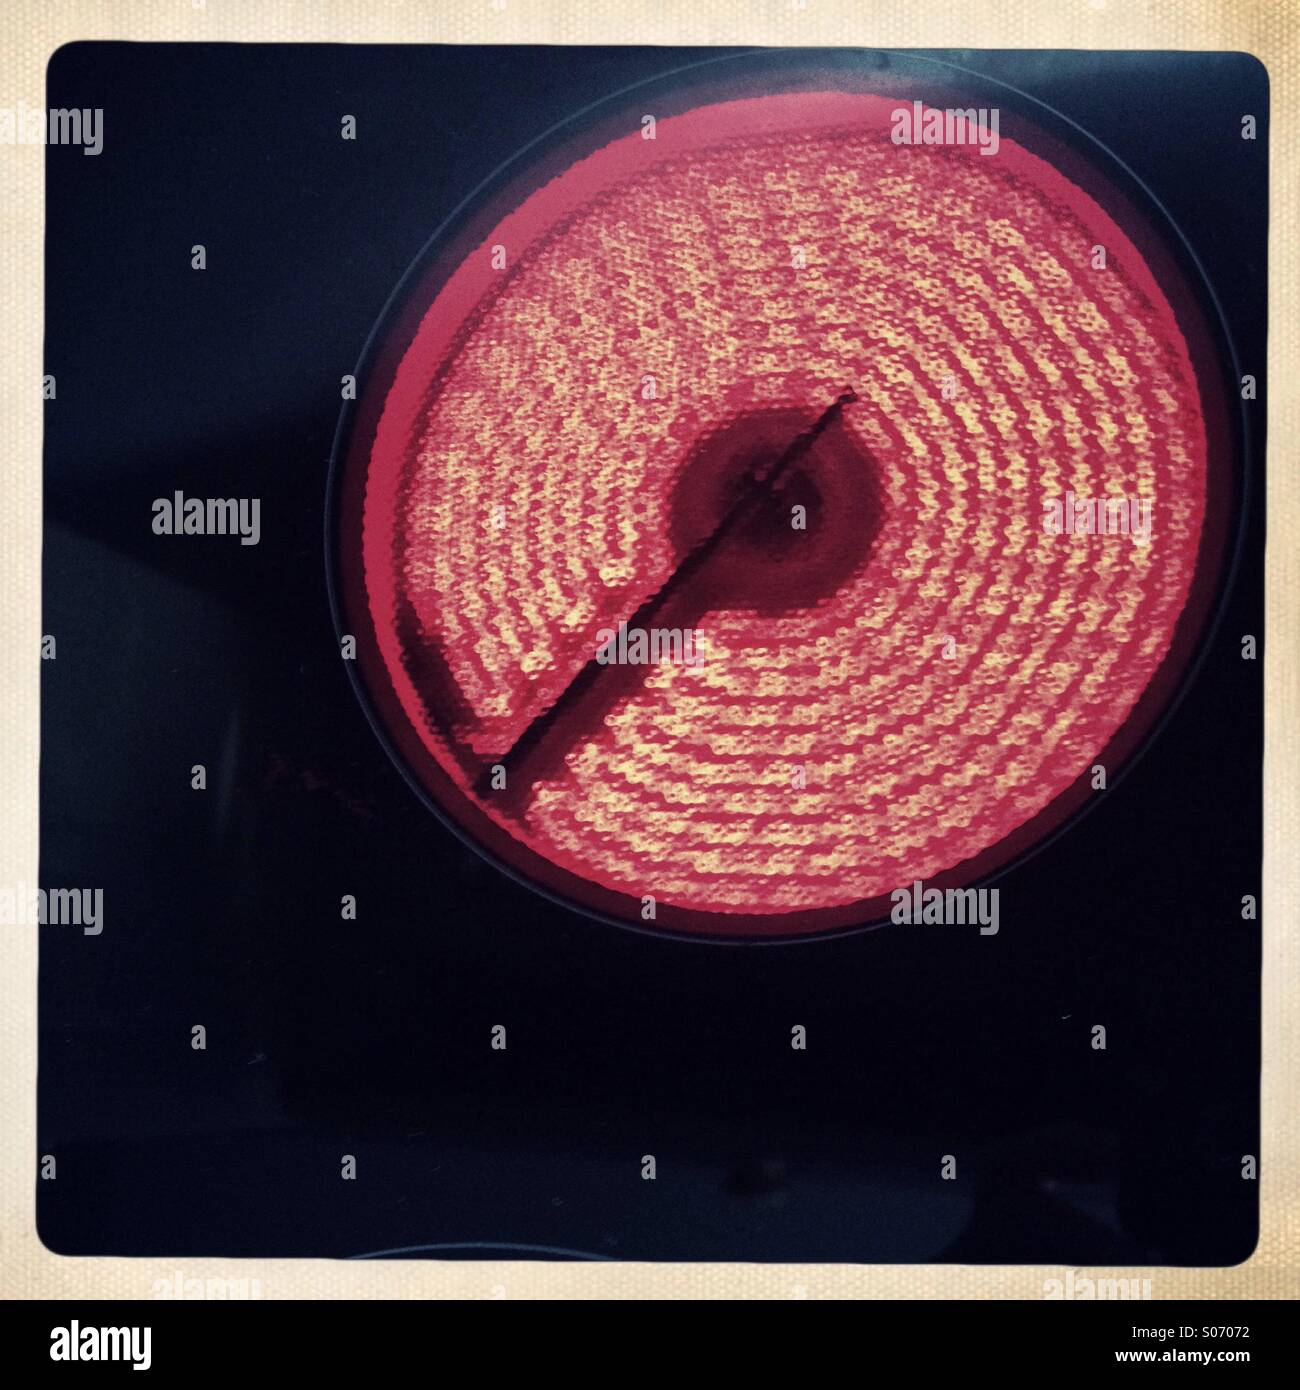 Red hot electric hob ring - Stock Image